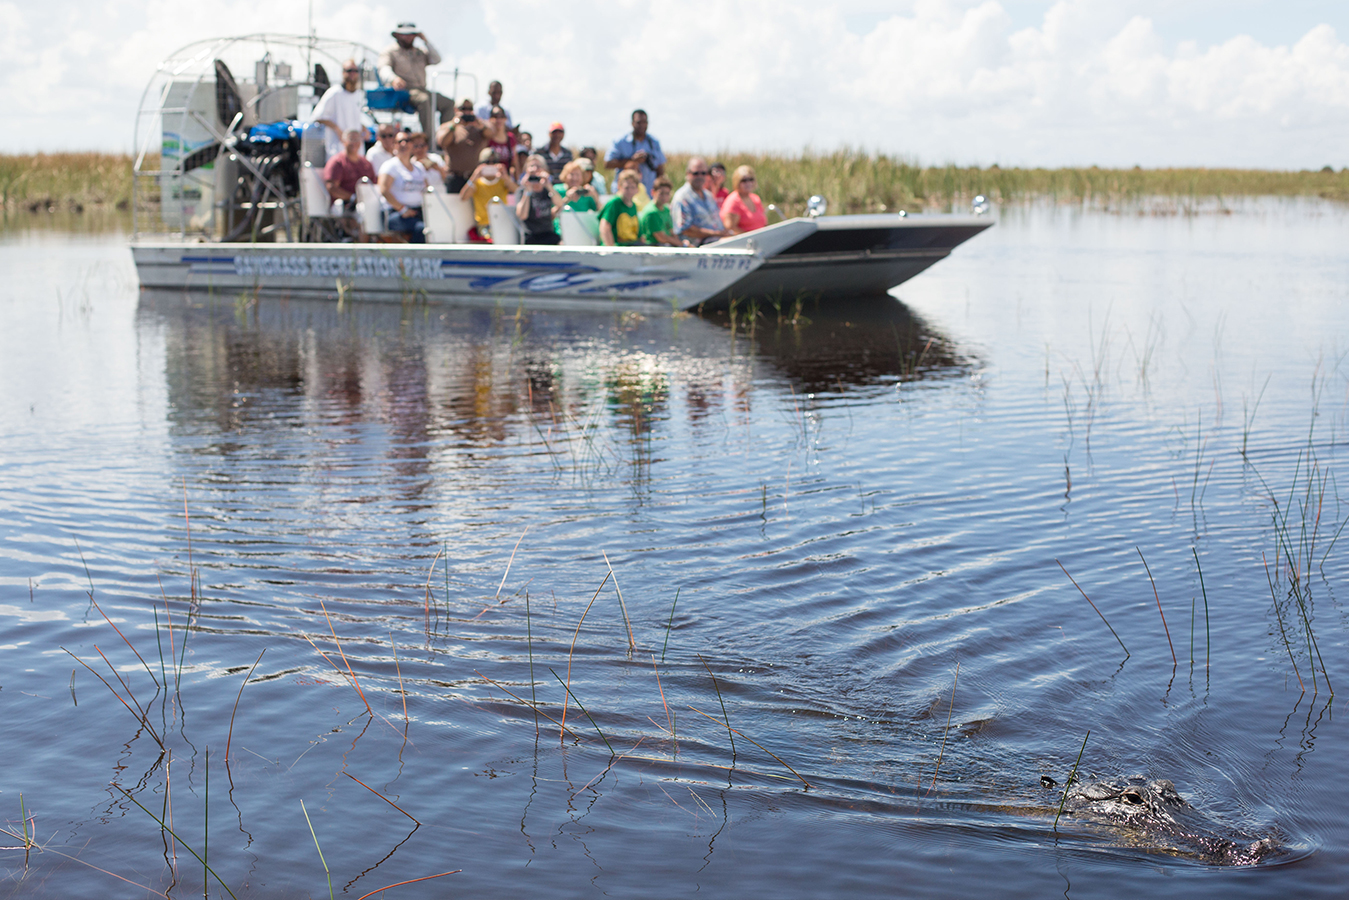 Sawgrass Park Airboat Tour